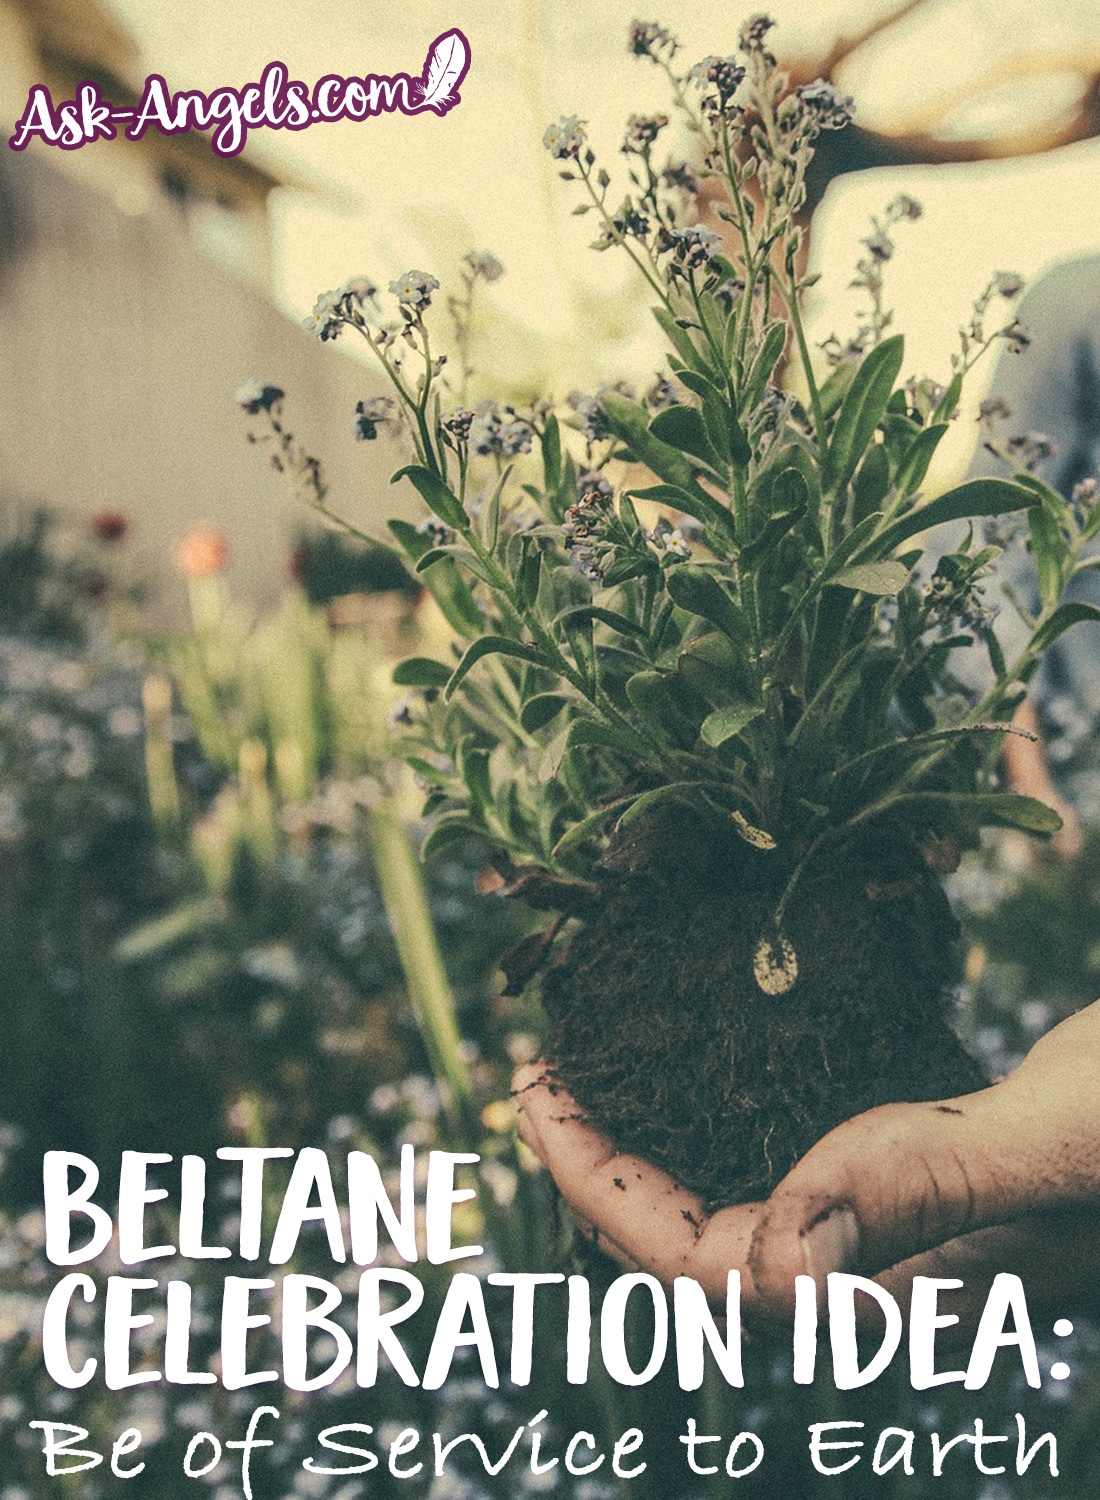 Beltane Celebration Idea - Be of Service to the Earth